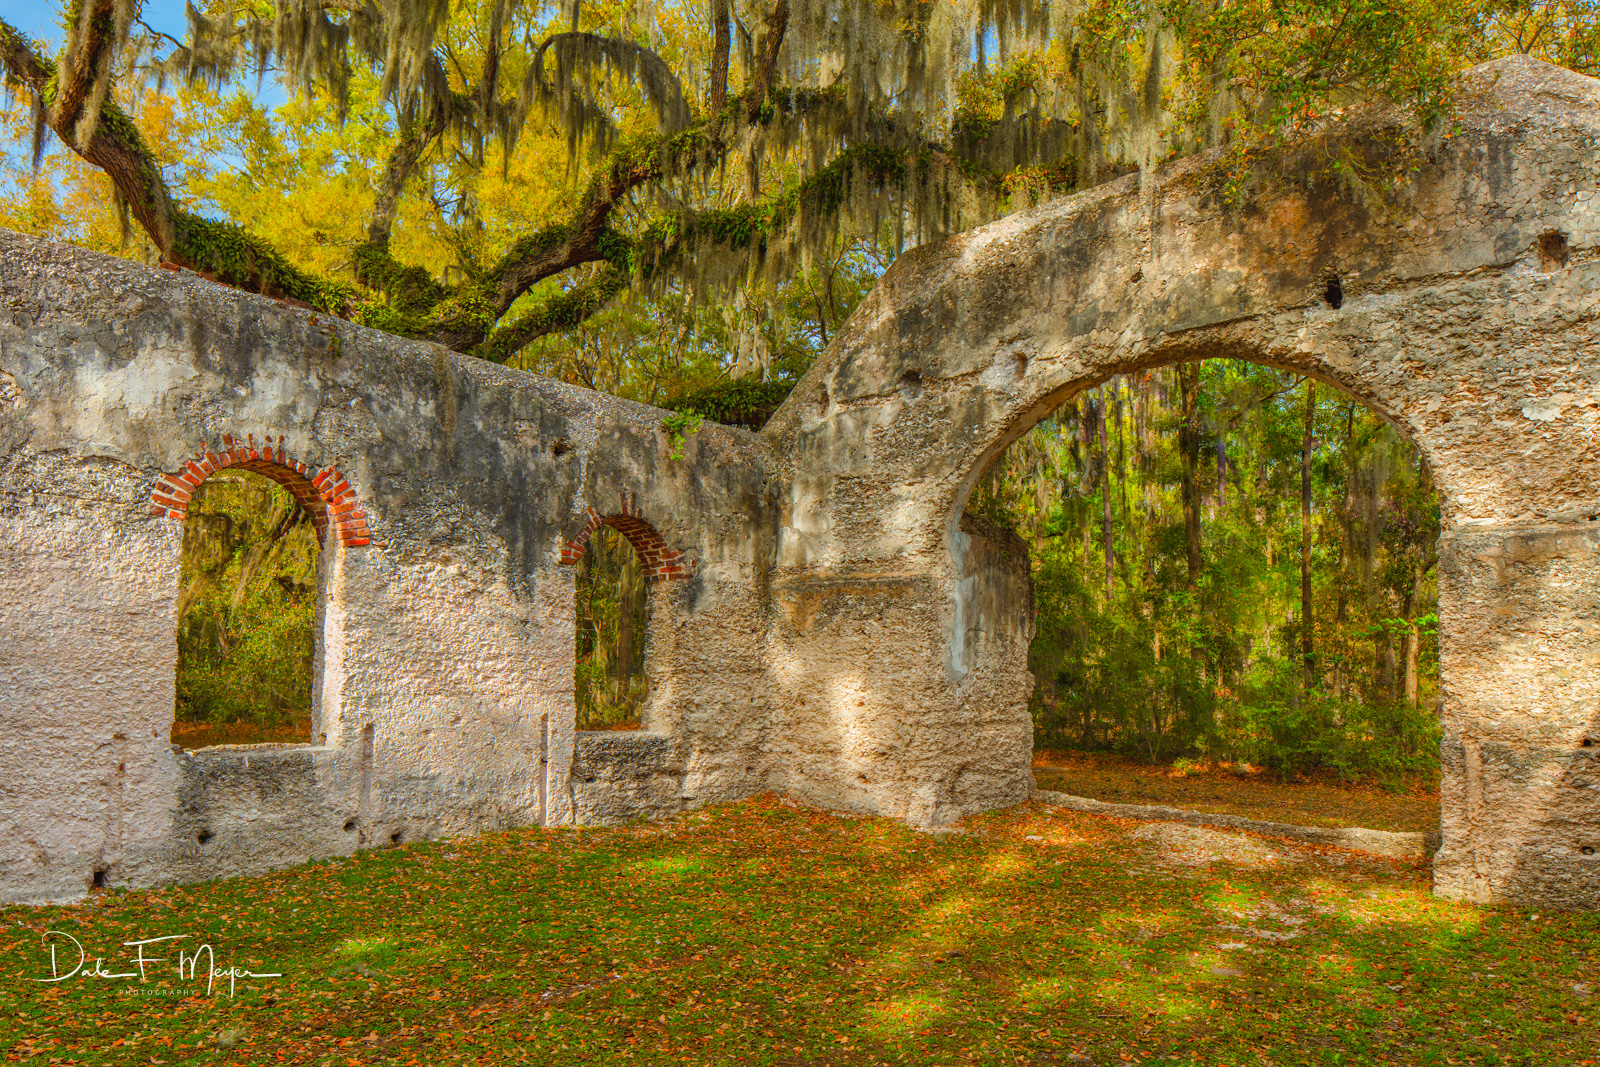 Chapel of Ease Saint Helena Island SC, Southern Places Gallery, Spring 2019, photo